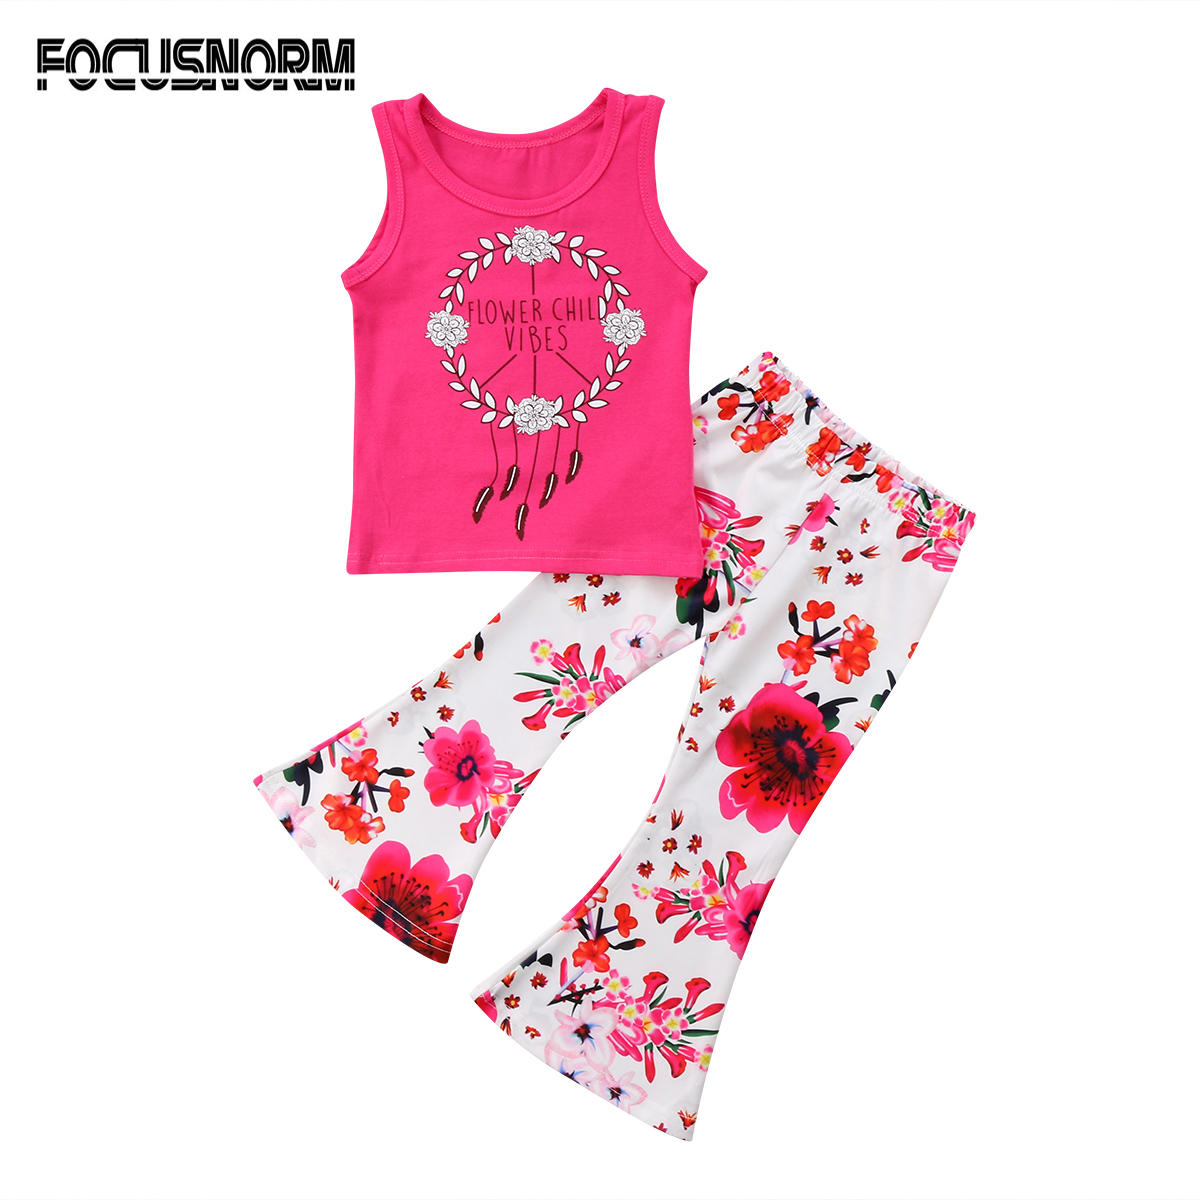 Baby Girls Kids Toddler Girls Printed Sleeveless T-shirt Tops+Floral Long Pants Outfit Clothes 2Pcs 2pcs children outfit clothes kids baby girl off shoulder cotton ruffled sleeve tops striped t shirt blue denim jeans sunsuit set